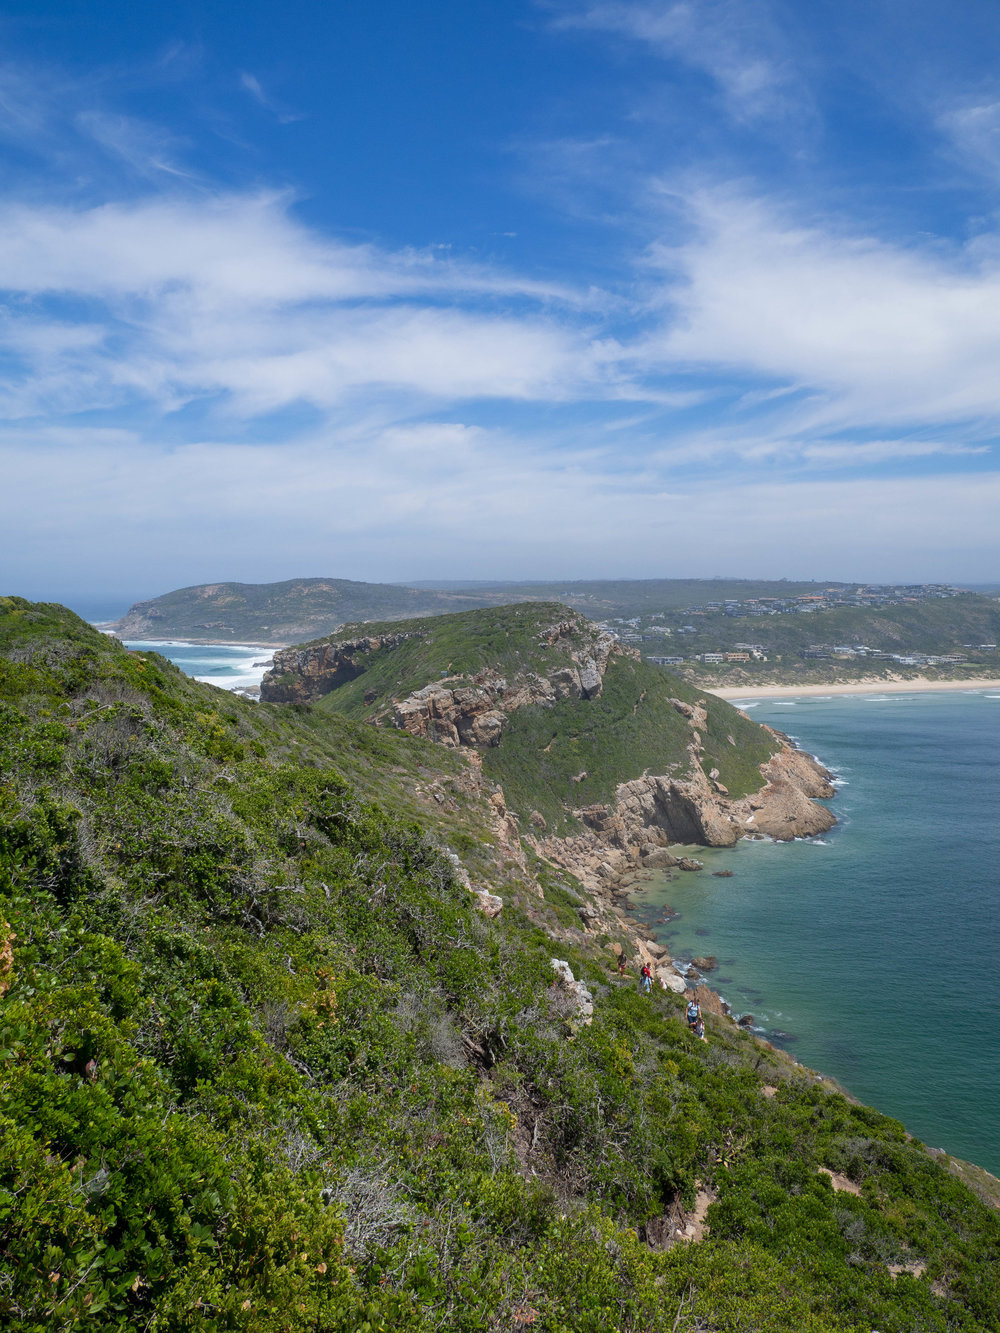 South Africa Travel Guide: Robberg National Park